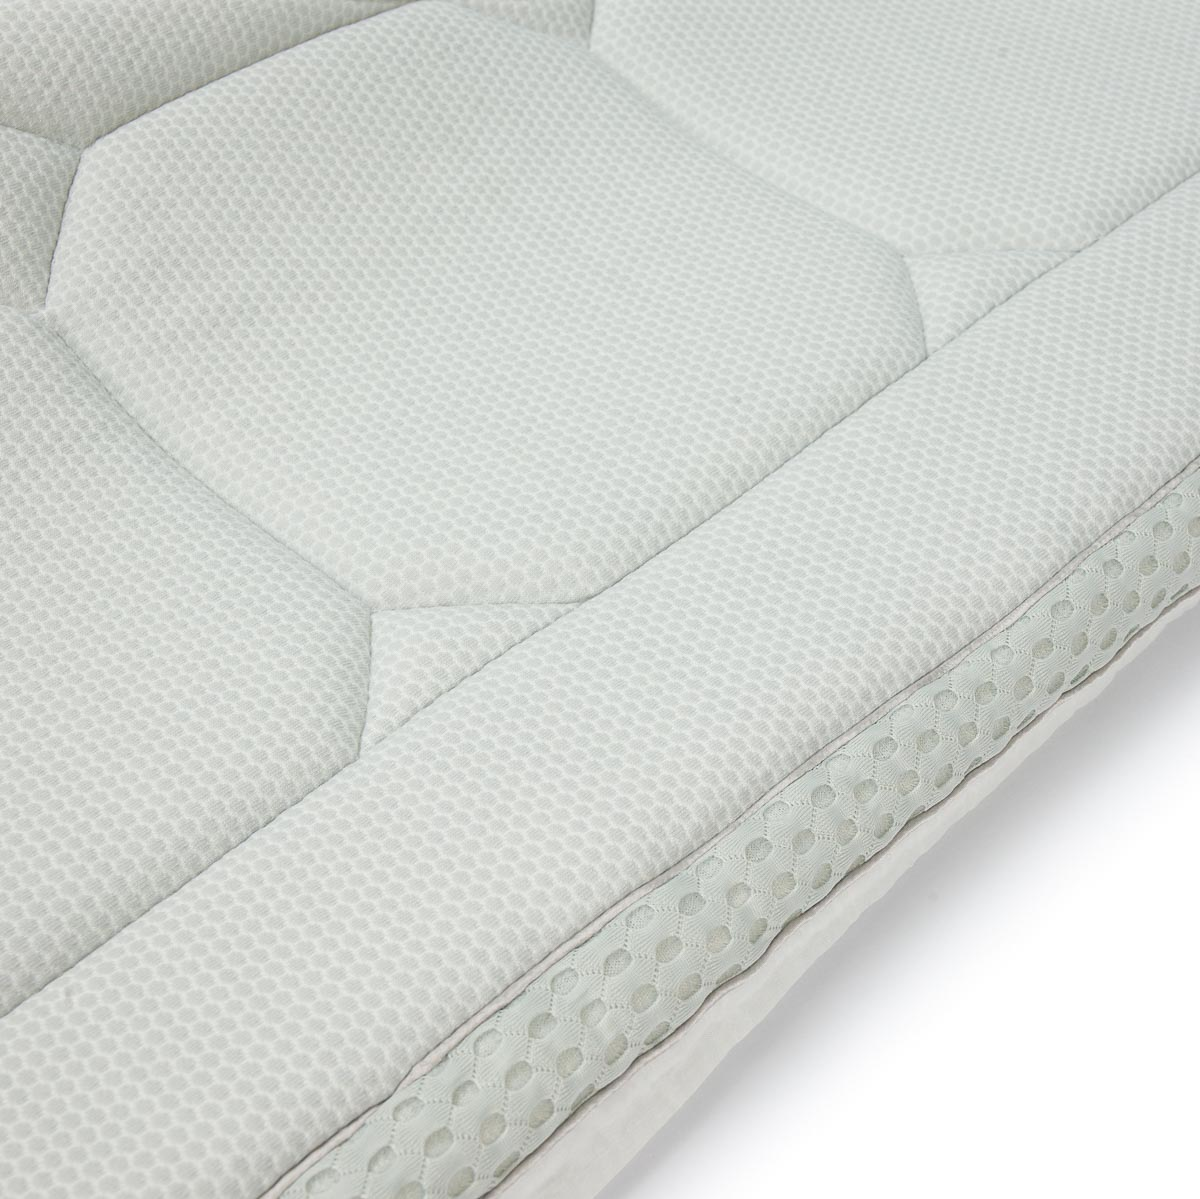 Caseys Sensation 50 Mattress Topper